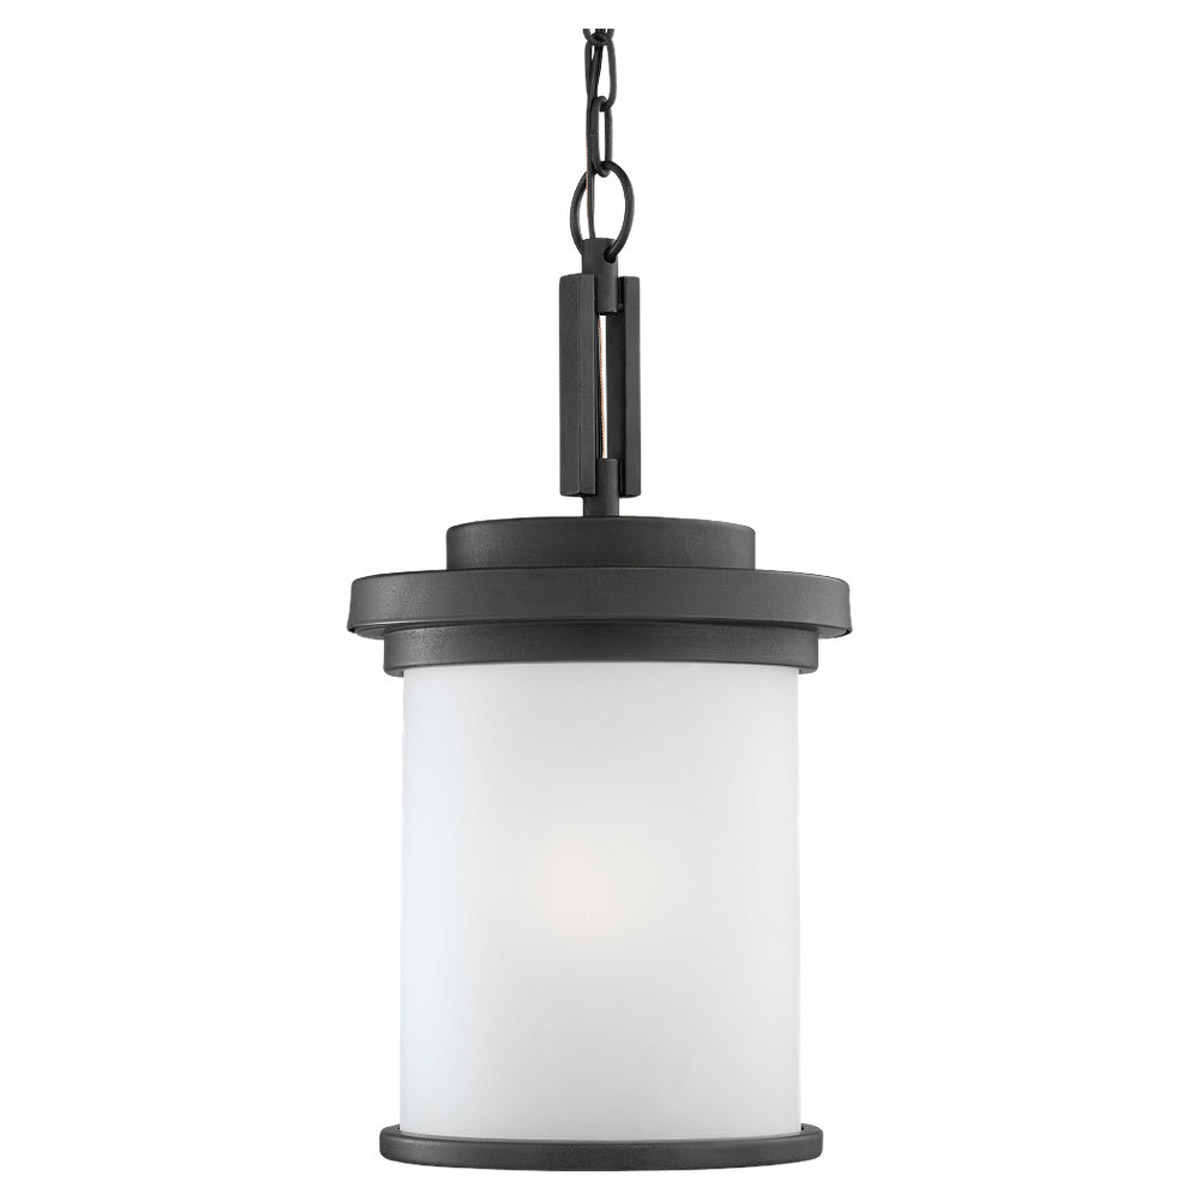 Sea Gull Lighting Winnetka 1 Light Outdoor Pendant in Forged Iron 60660-185 photo